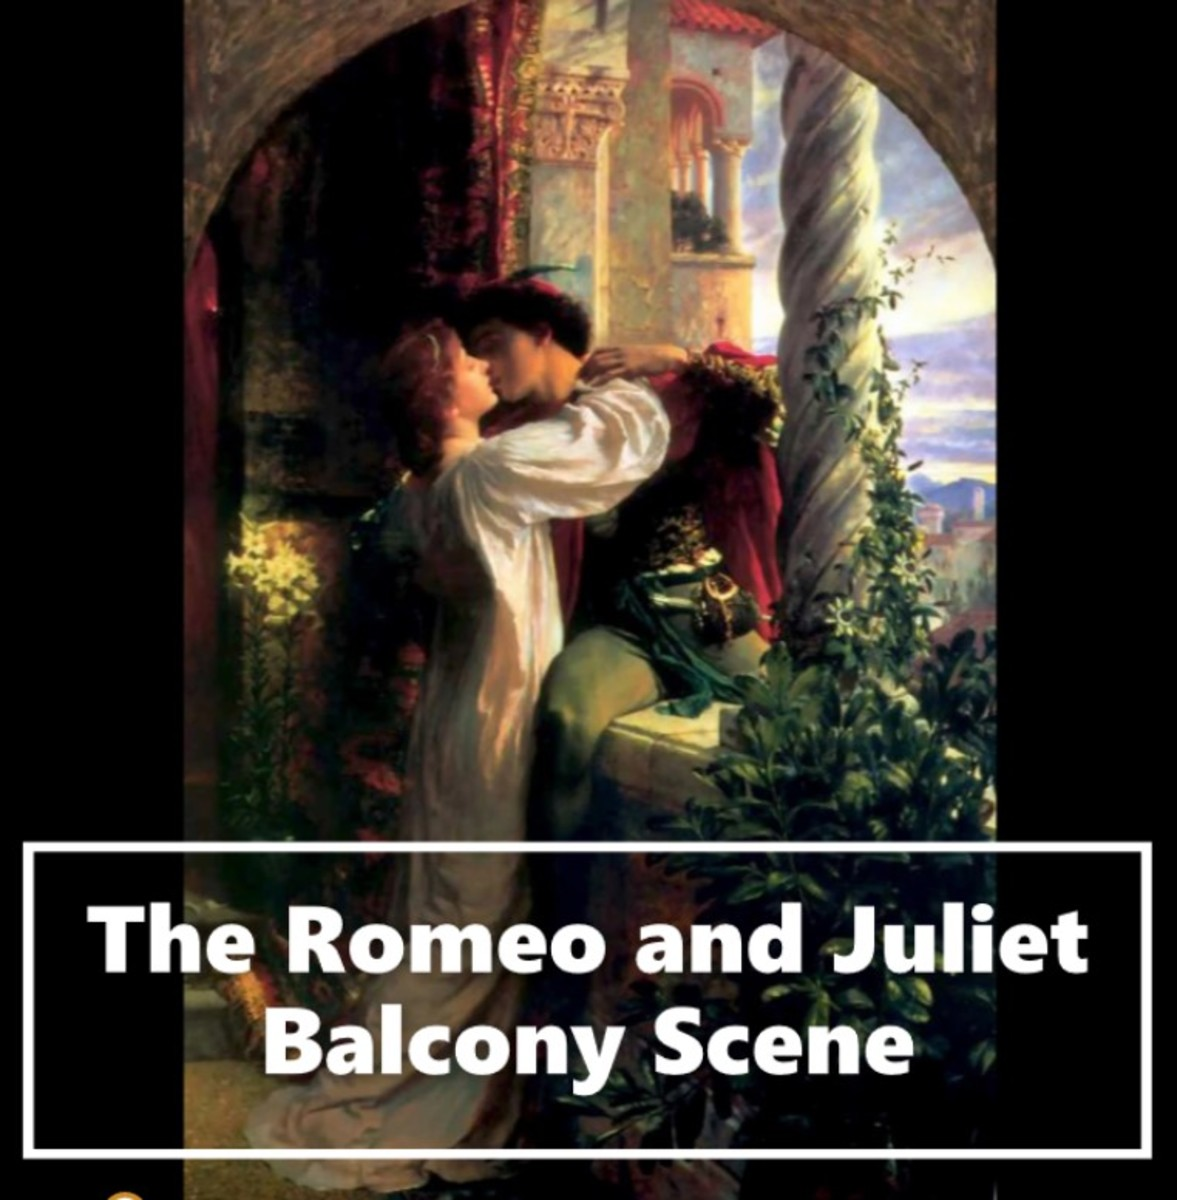 The Romeo and Juliet Balcony Scene